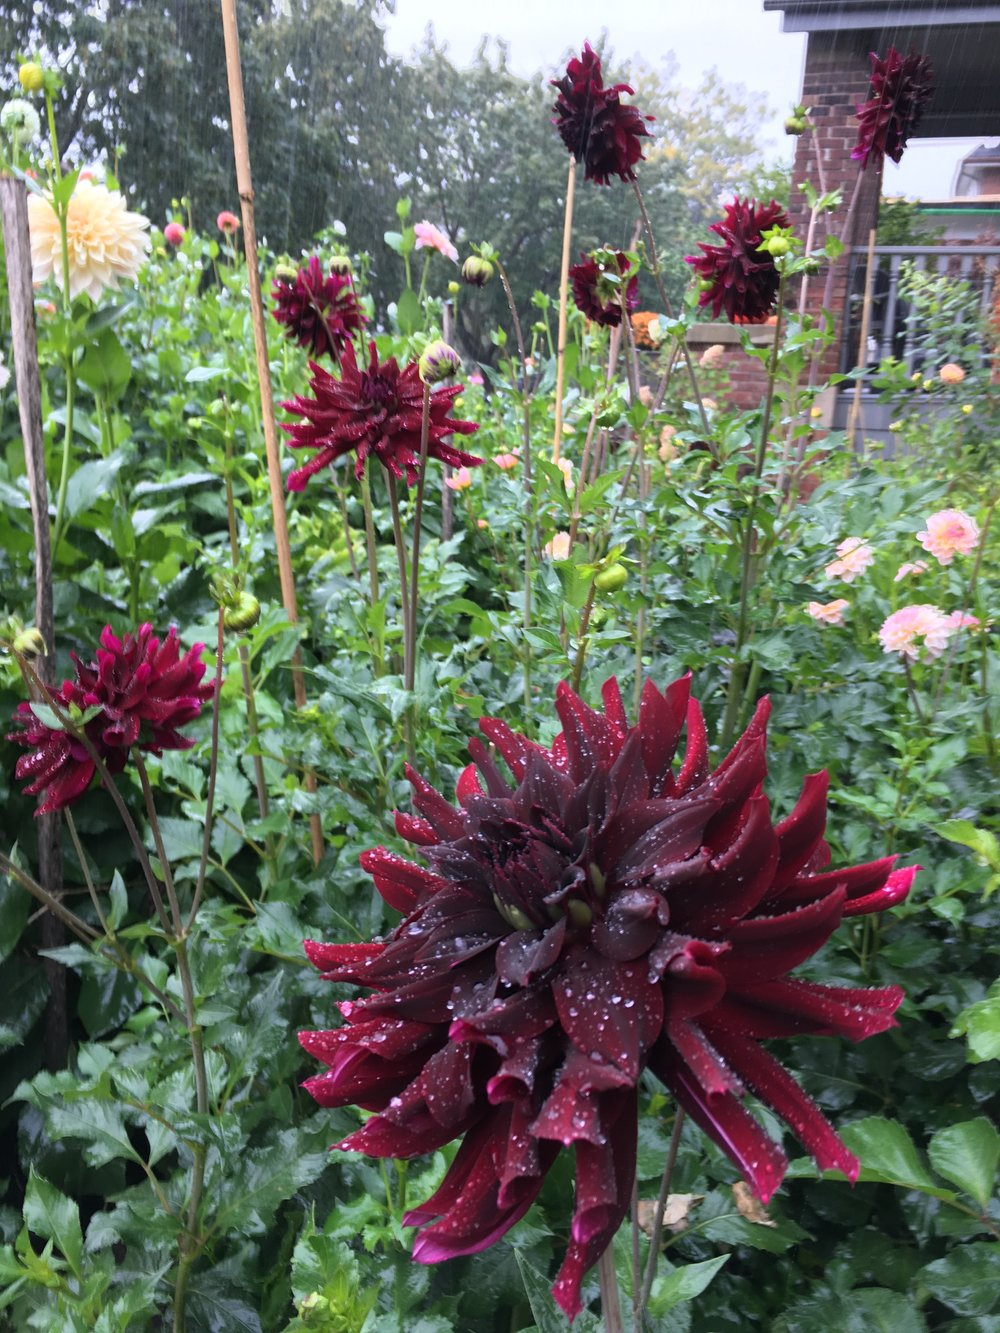 Rip city - One of my favorite burgundy flowers, both for gorgeous form and velvety colour.Height 5'+, blooms 5-6